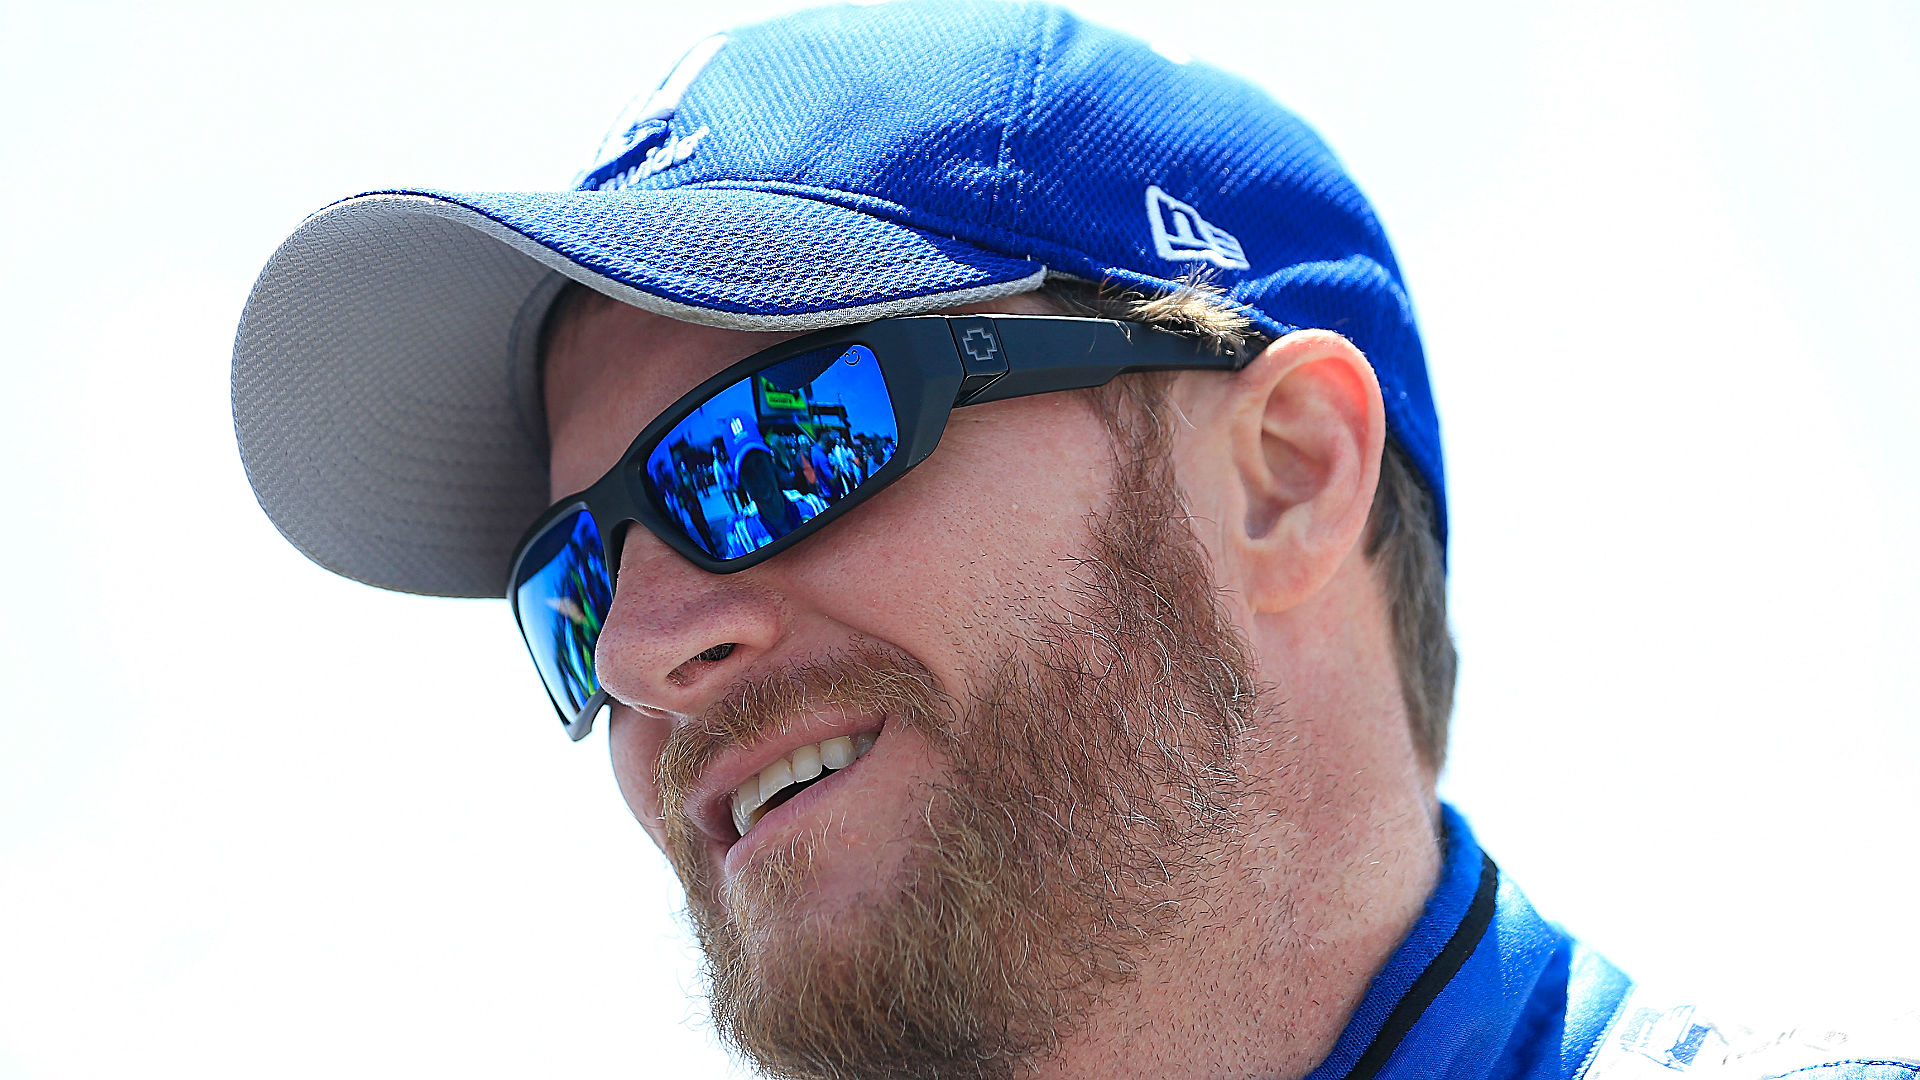 NASCAR odds and driver ratings – Earnhardt Jr. tops wide-open field at Daytona